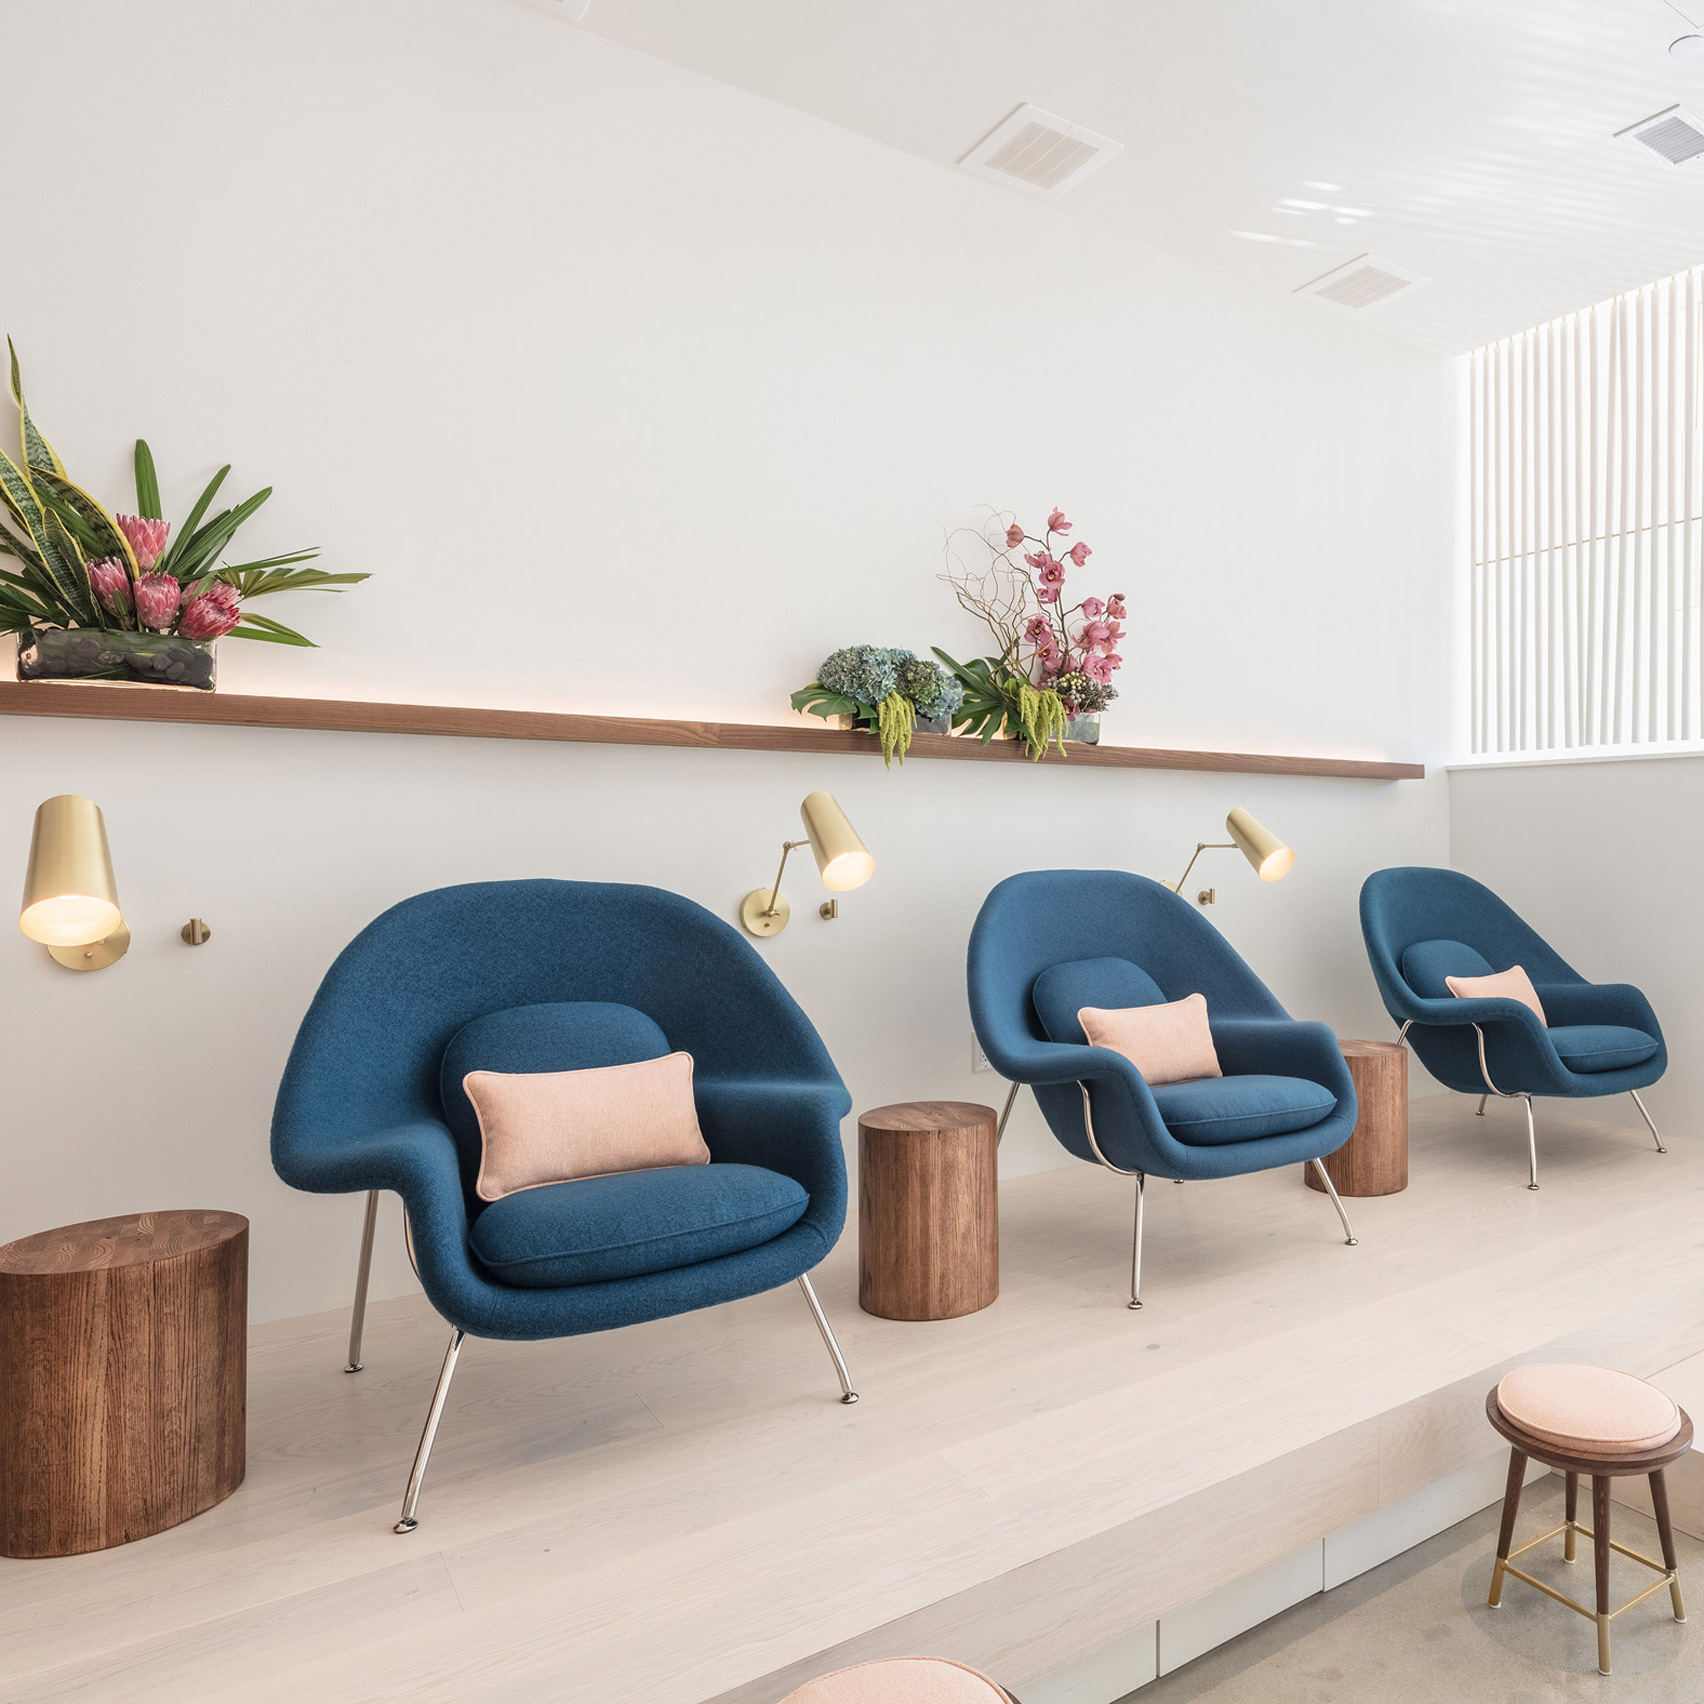 Content Furnishes Paloma Nail Salon In Texas With Comfy Blue Chairs